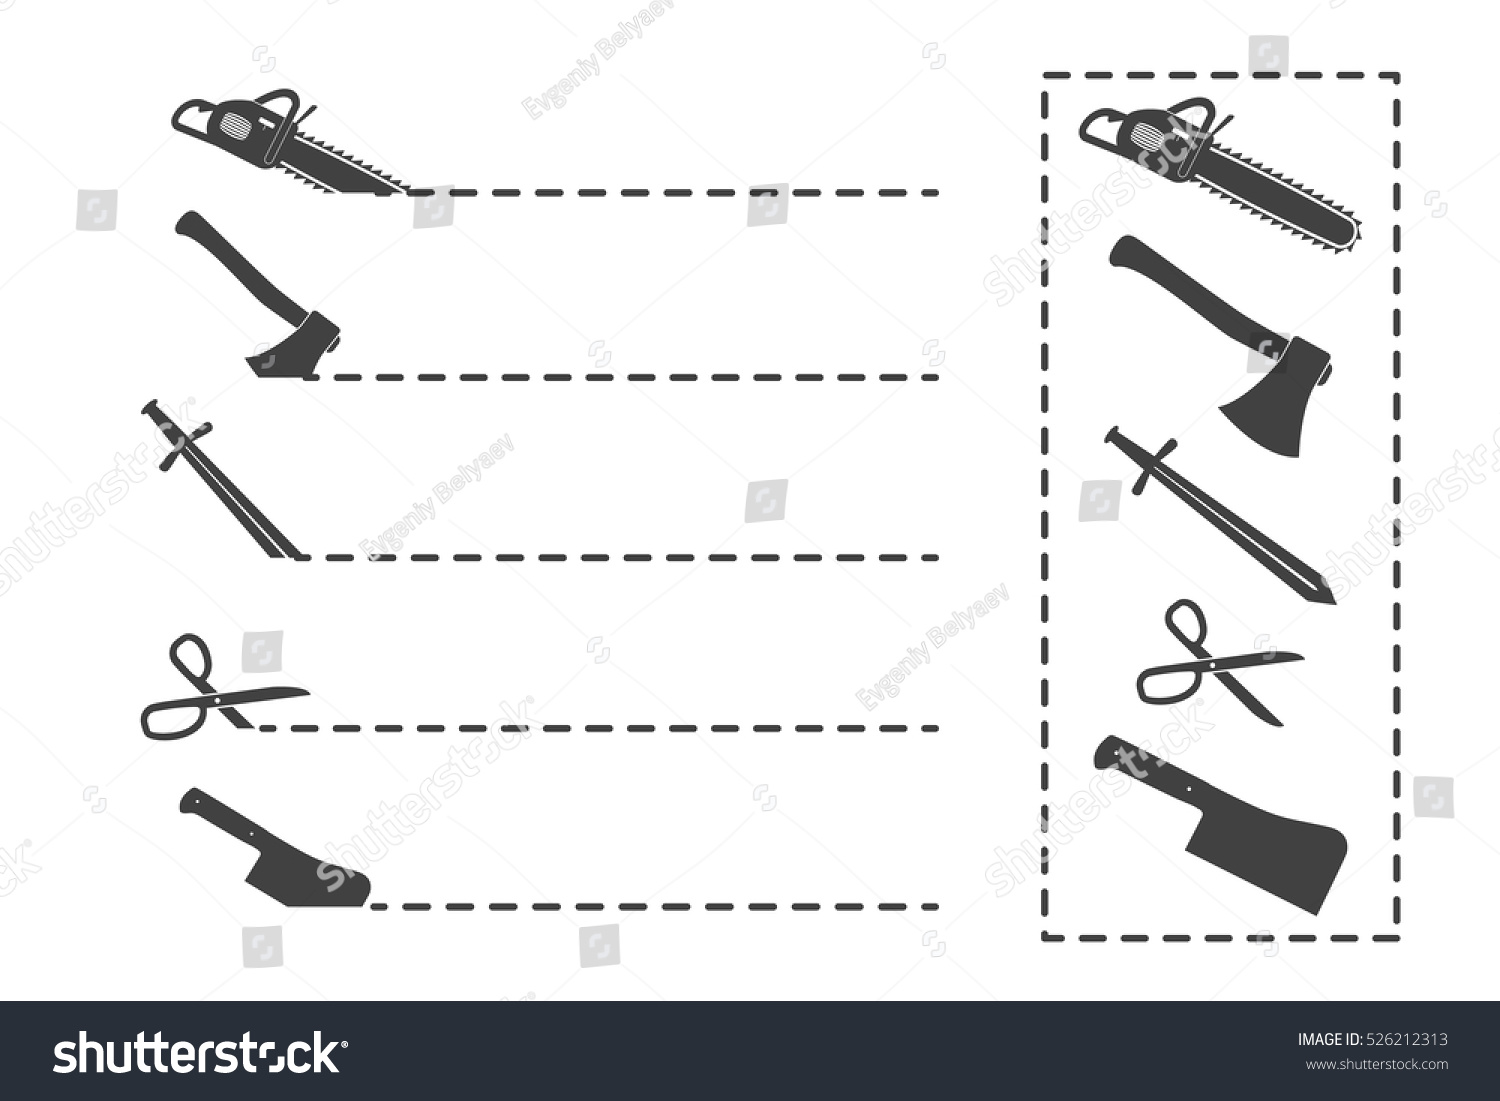 Cut here symbol scissors dotted line stock vector 526212313 cut here symbol scissors and dotted line scissors with cut lines isolated on white biocorpaavc